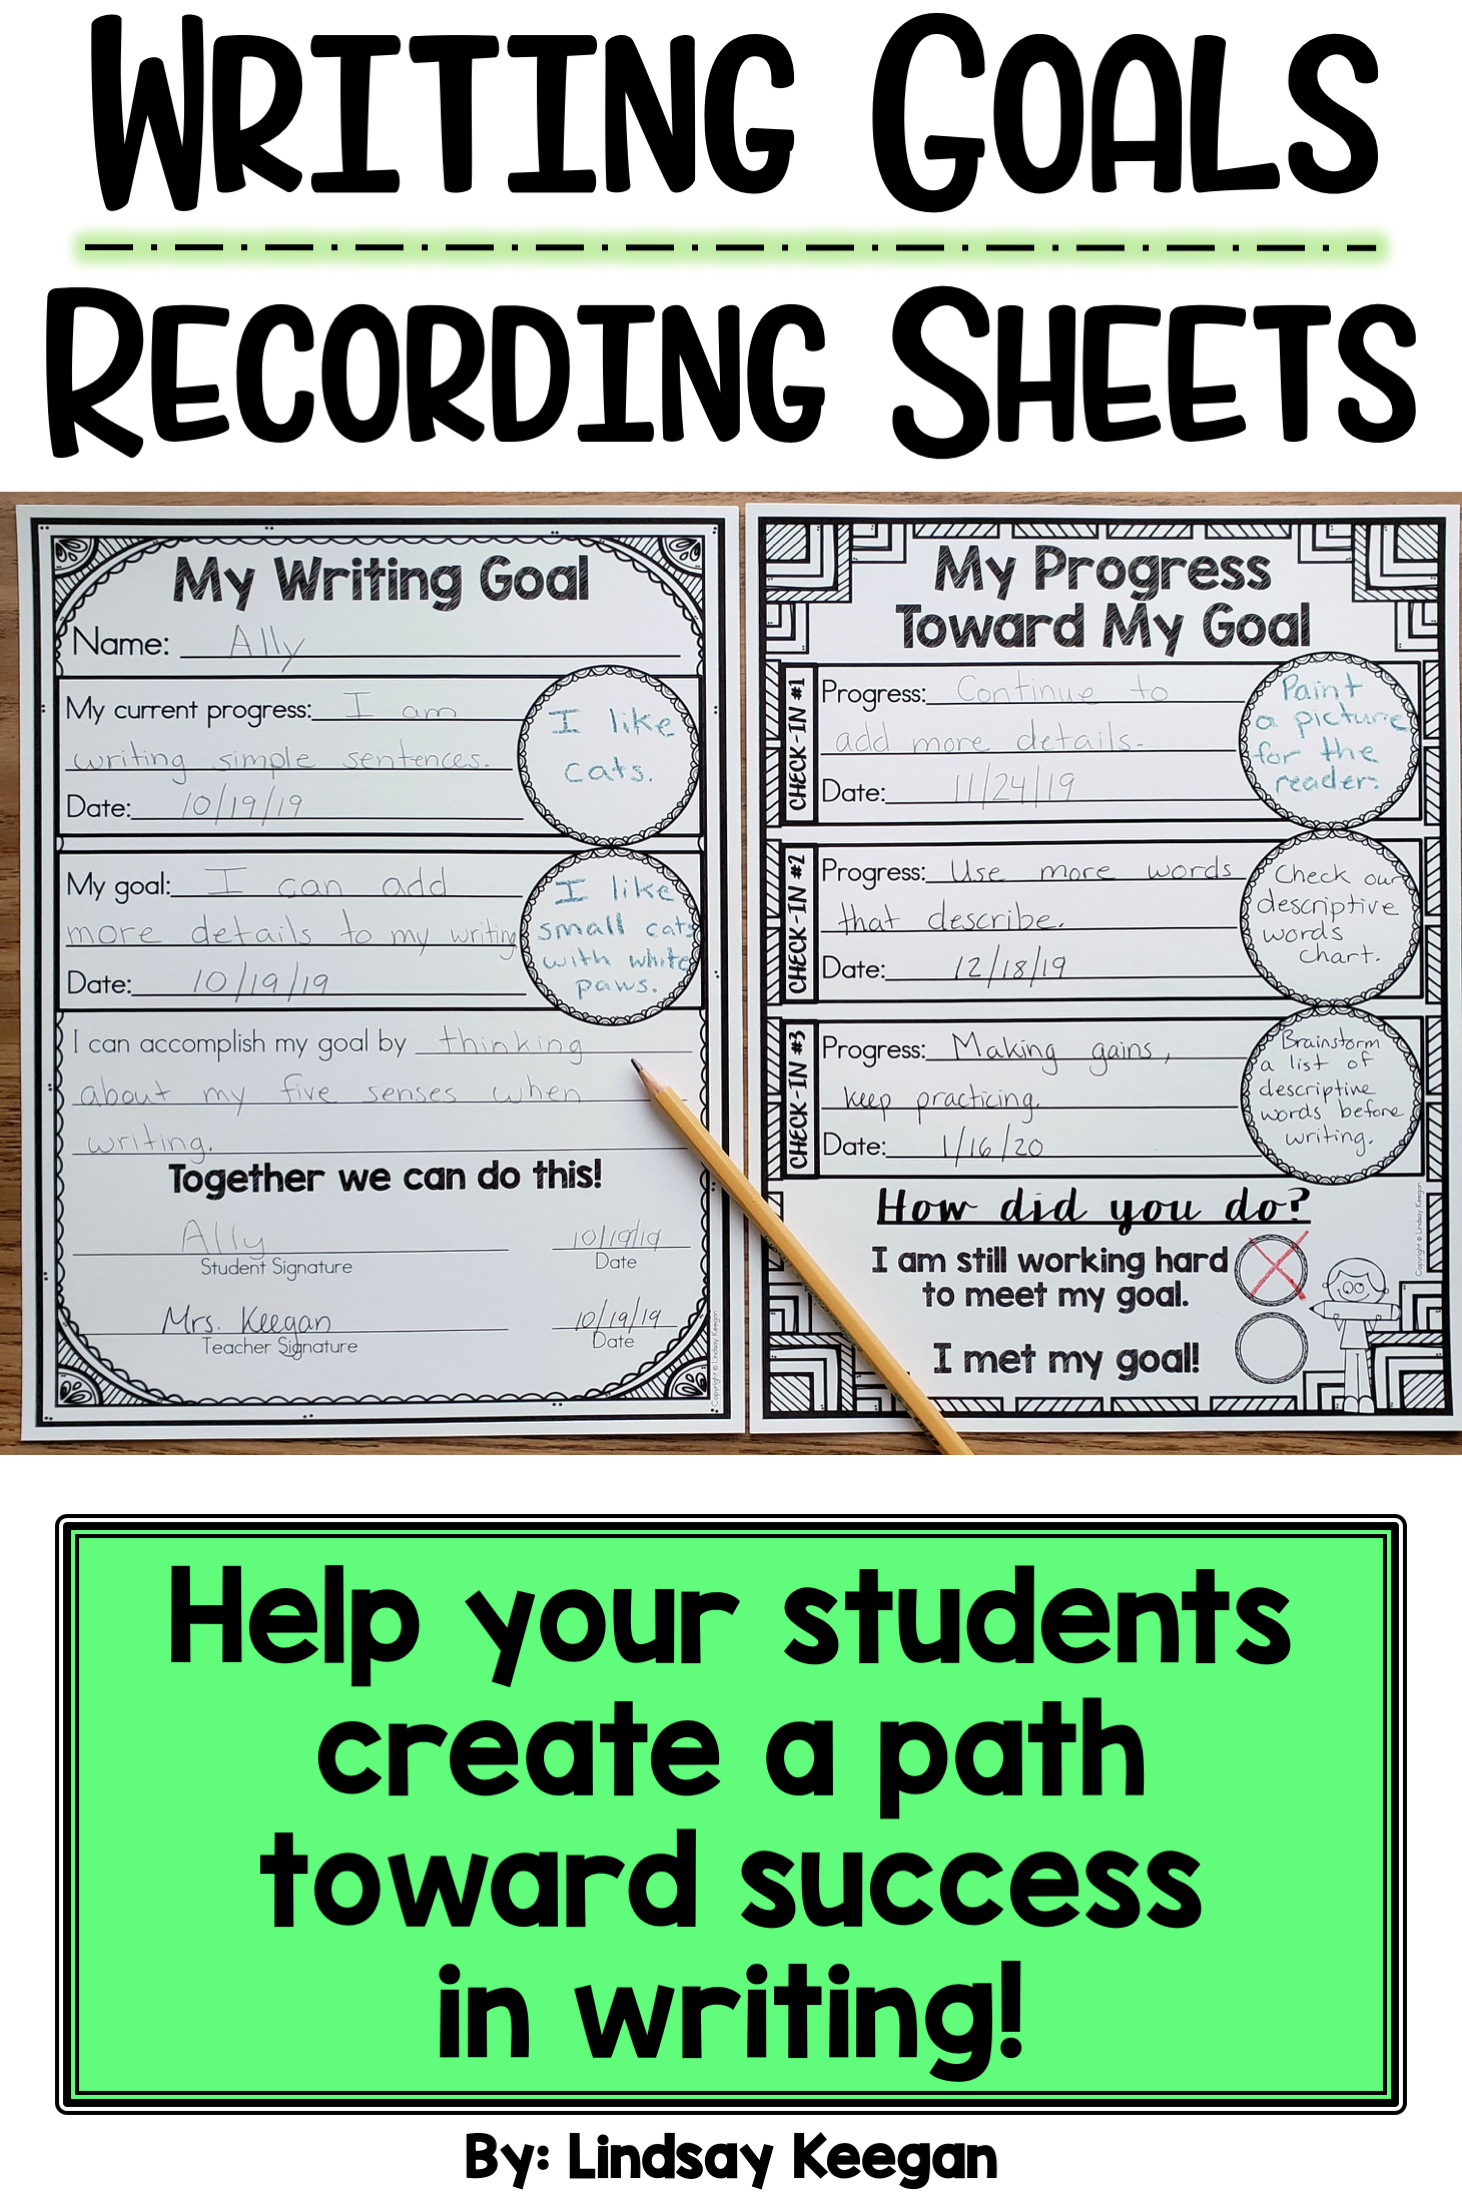 Writing Goals Recording Sheets In